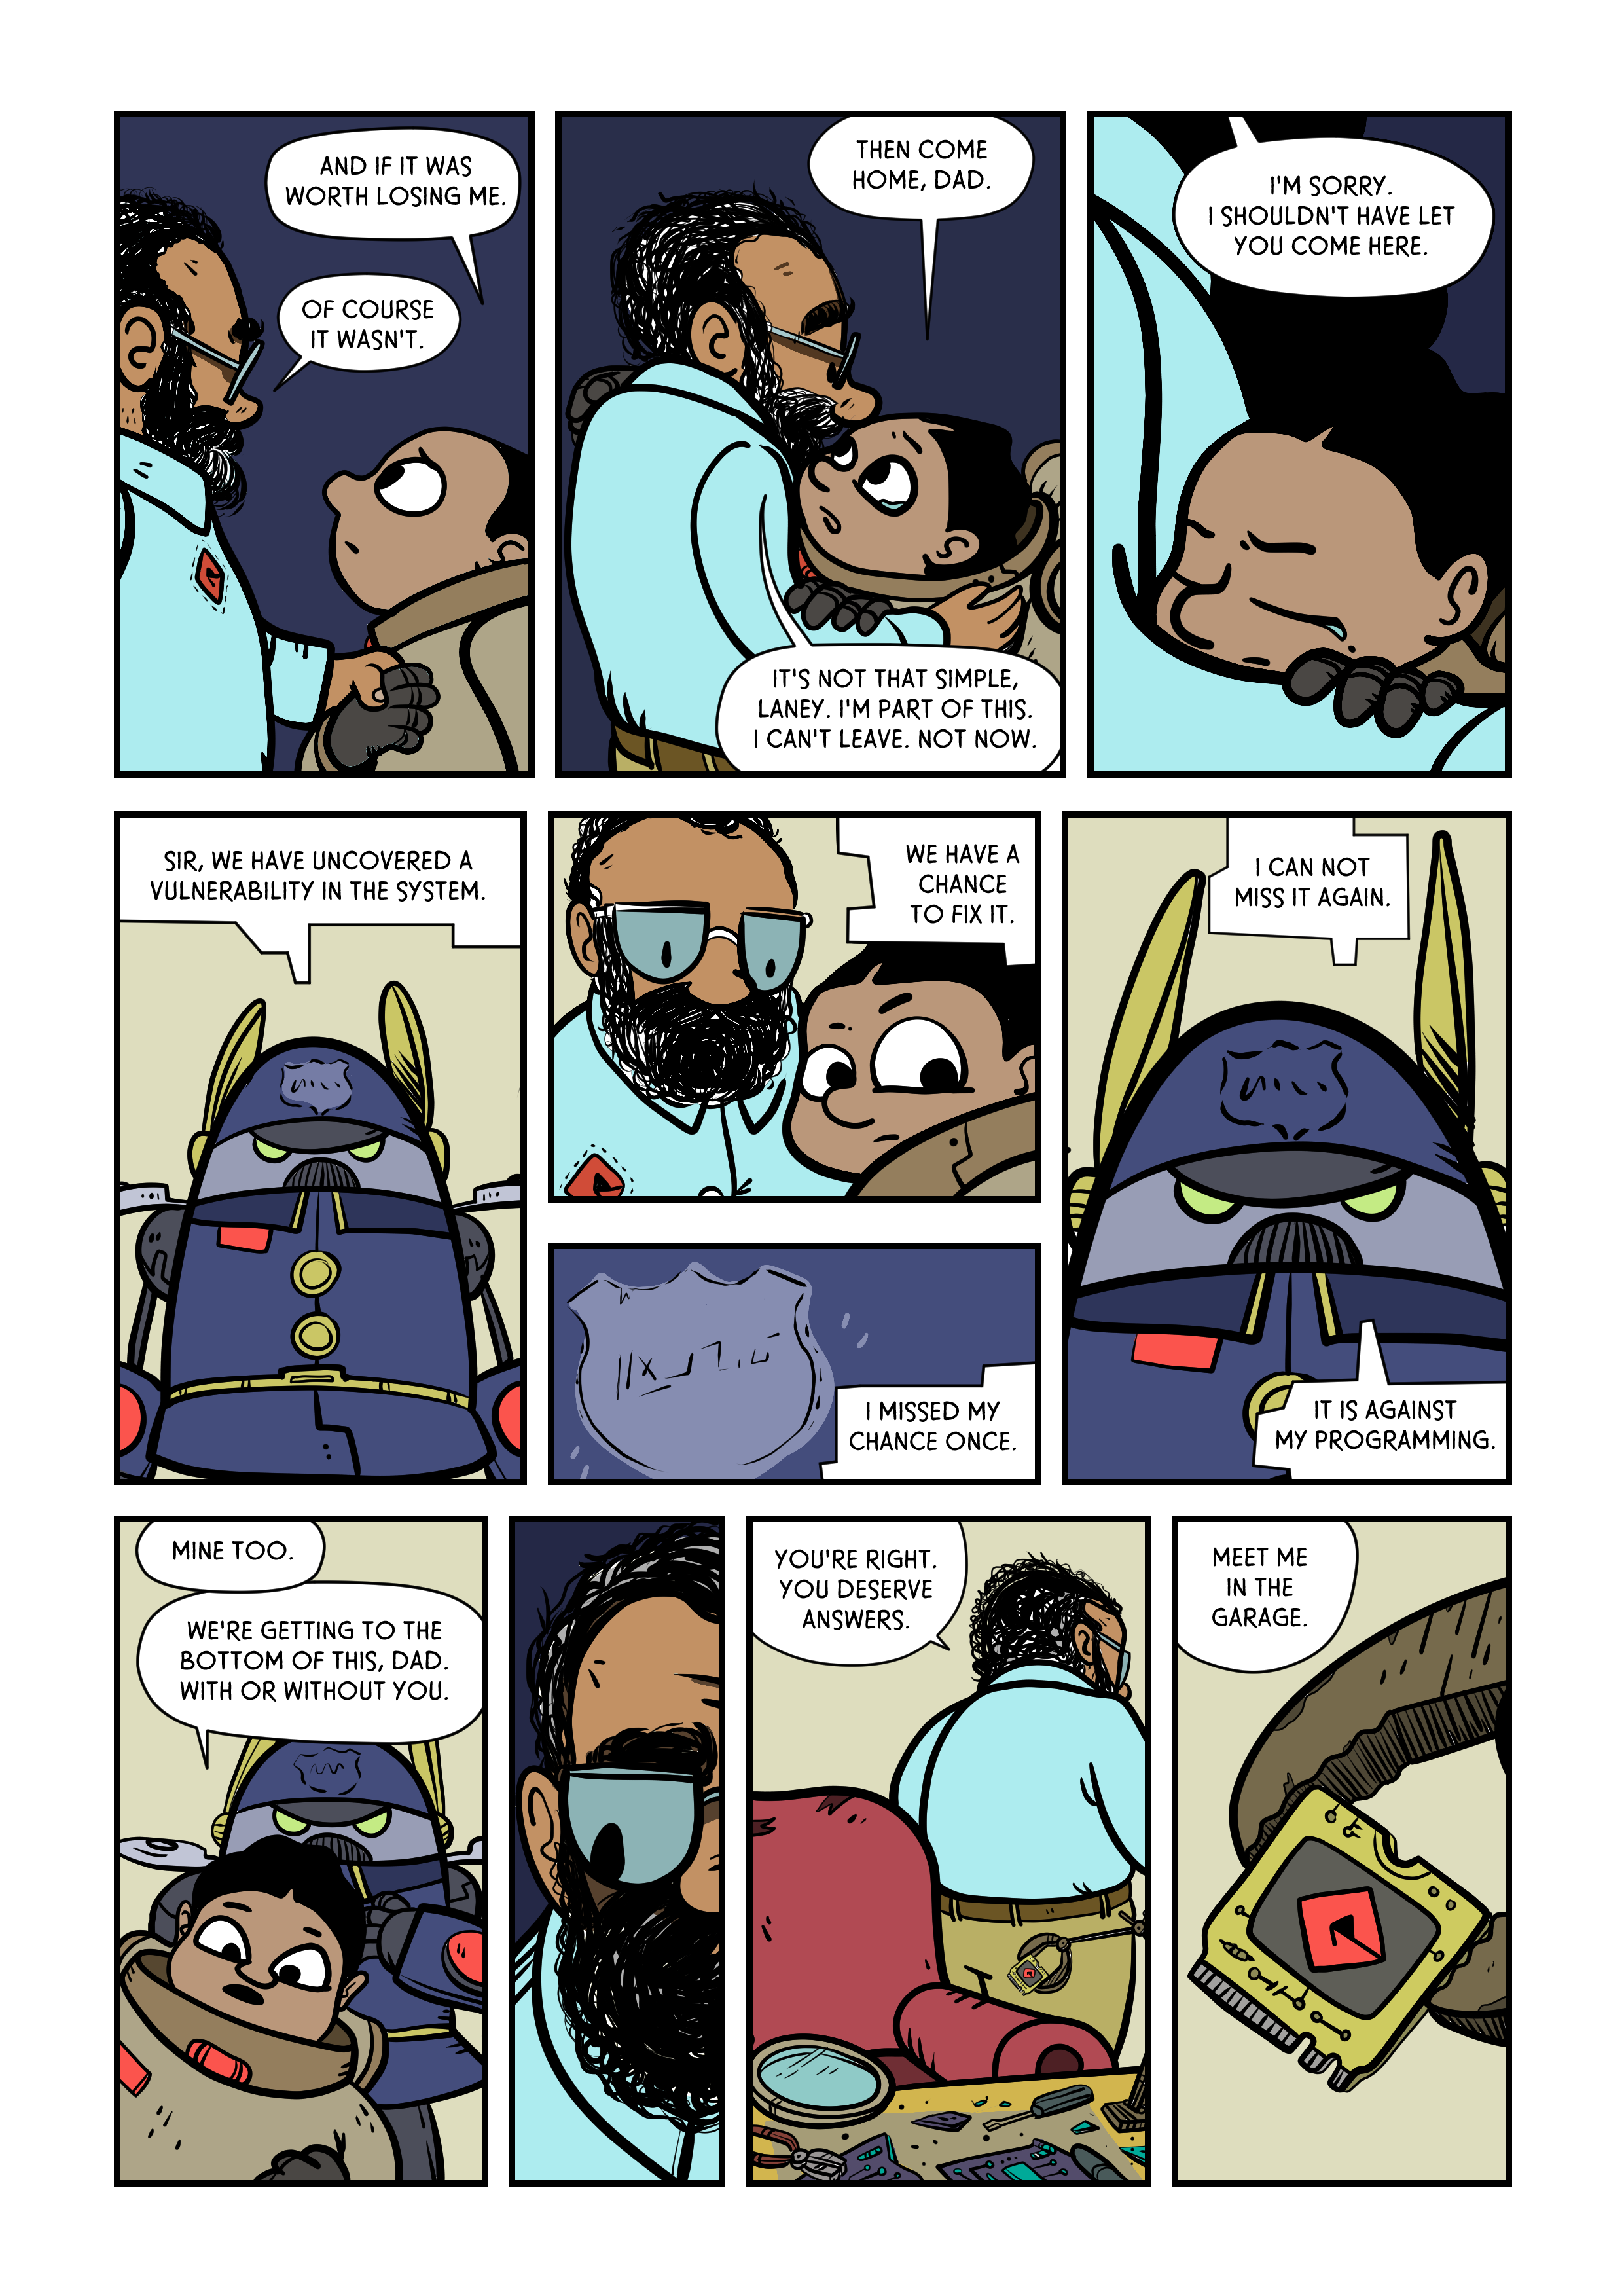 the_exploit_comic_ch6_2.png